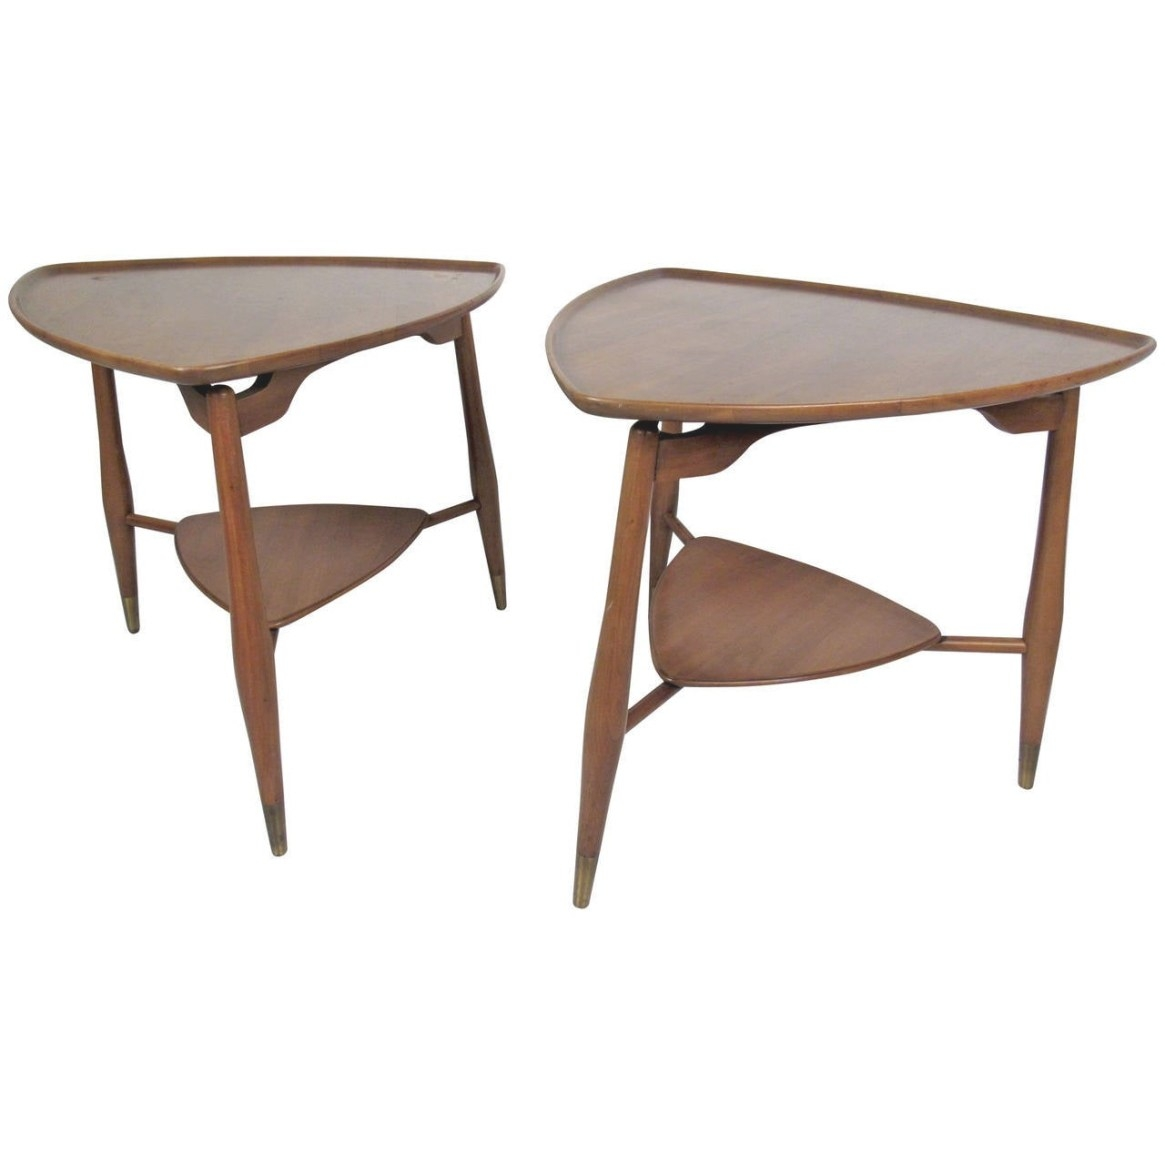 Pair Of Mid Century Modern End Tablesjohn Widdicomb throughout Mid Century Modern Side Table